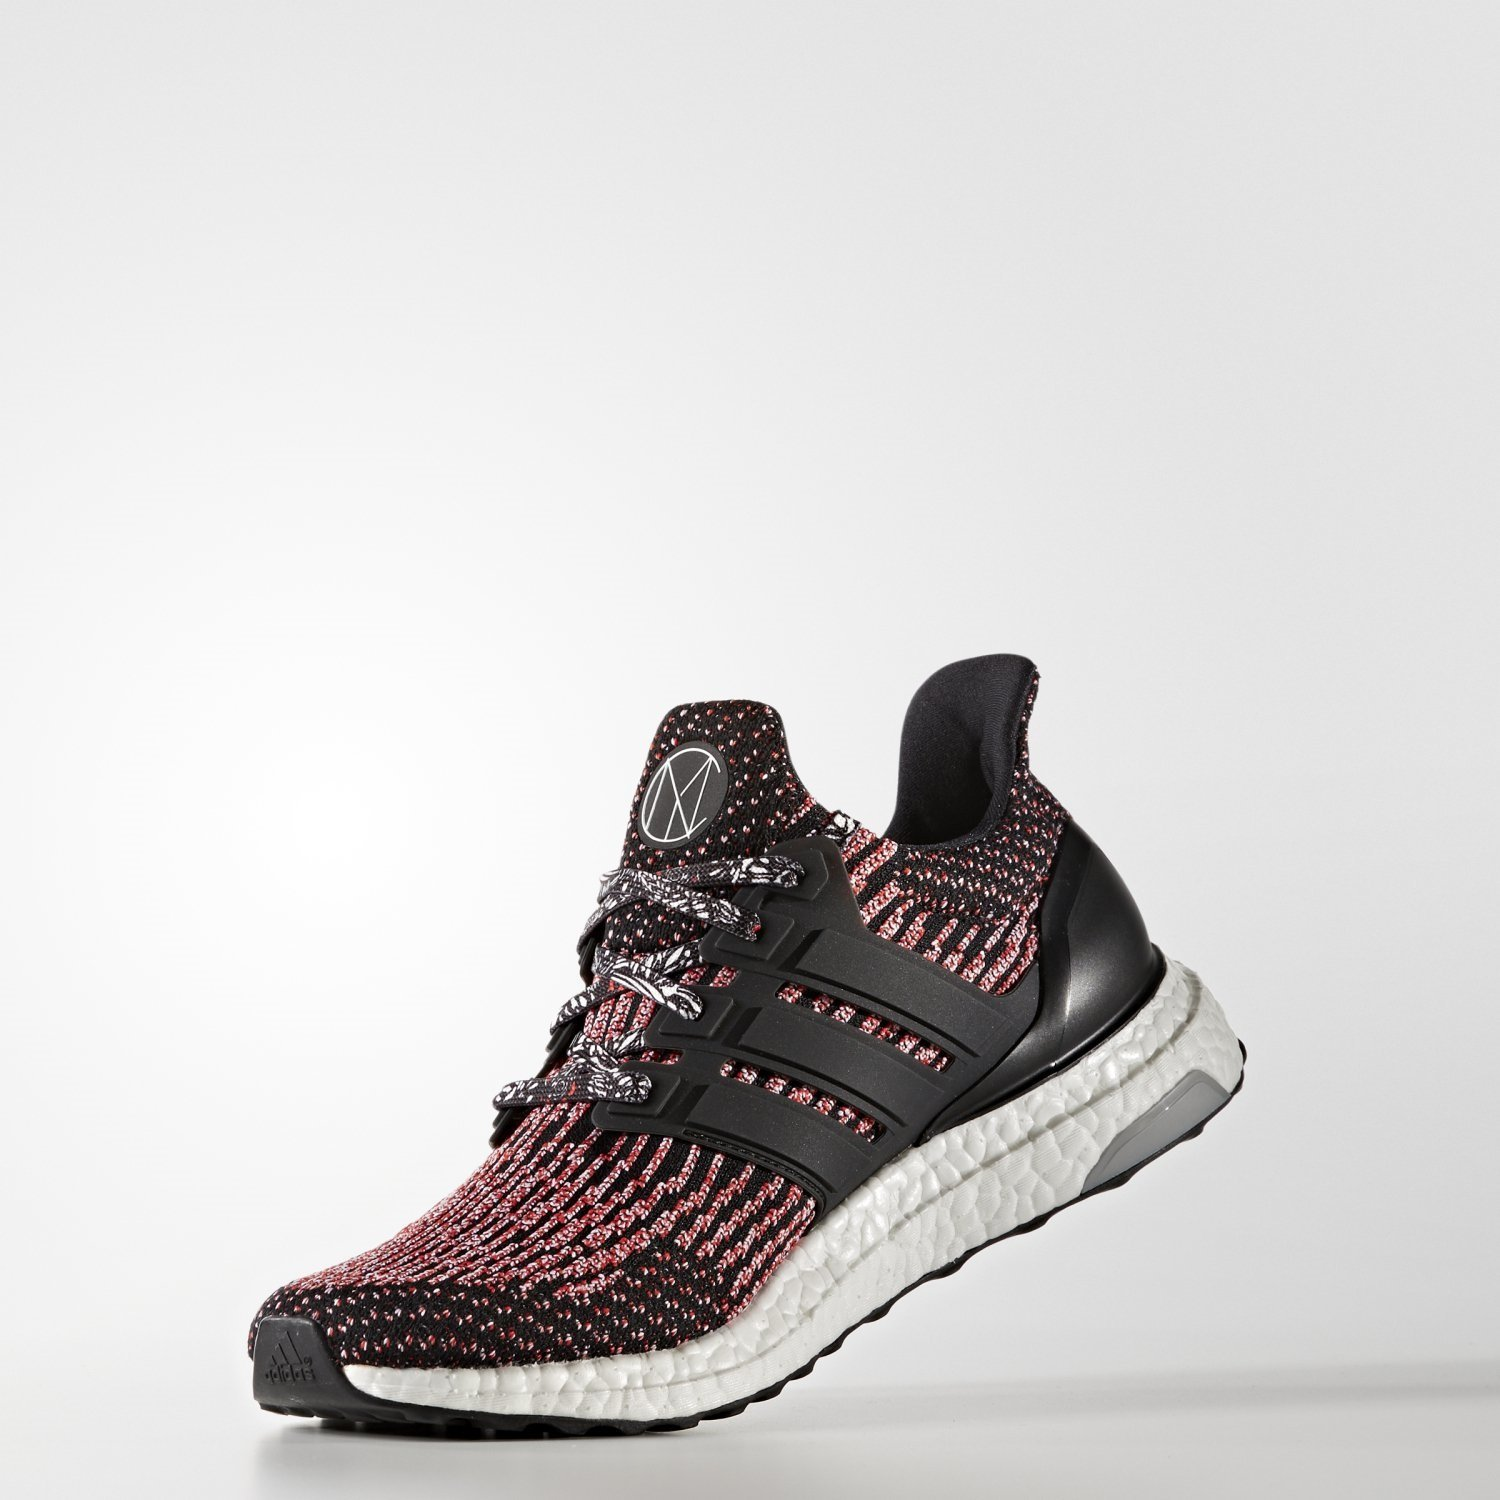 adidas-ultra-boost-cny-ltd-release-20170127